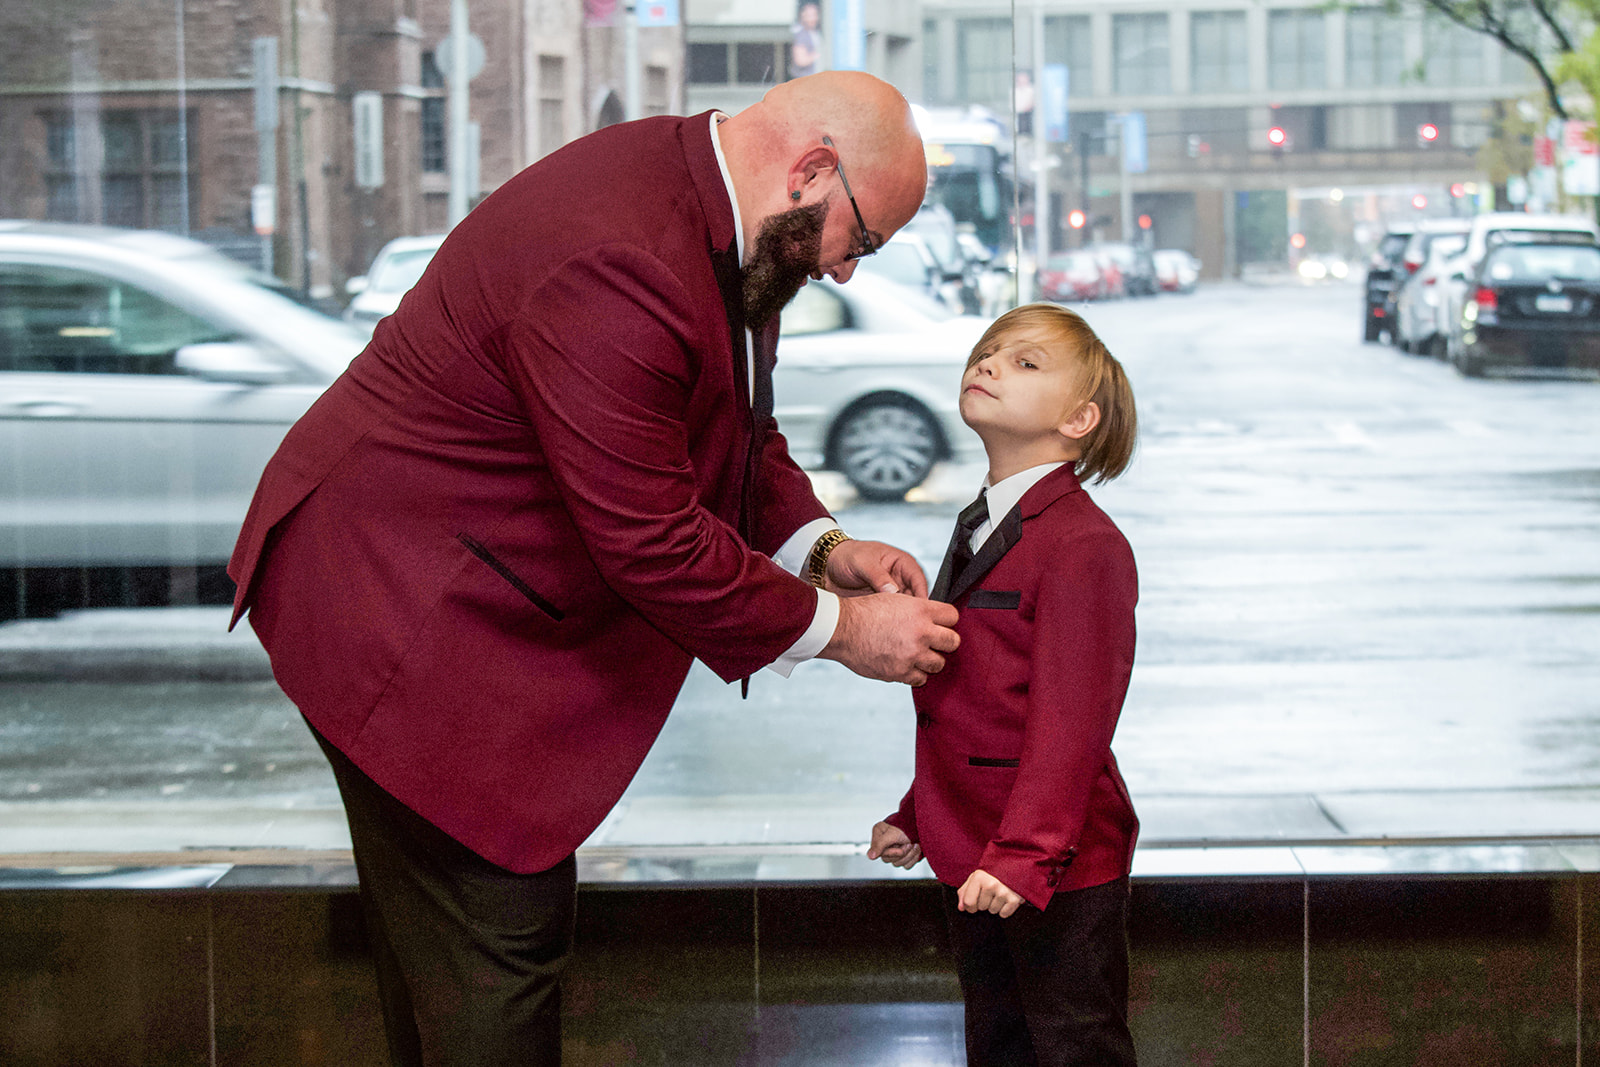 Groom's son as his ring bearer in a matching maroon and black suit - Pearl Weddings & Events